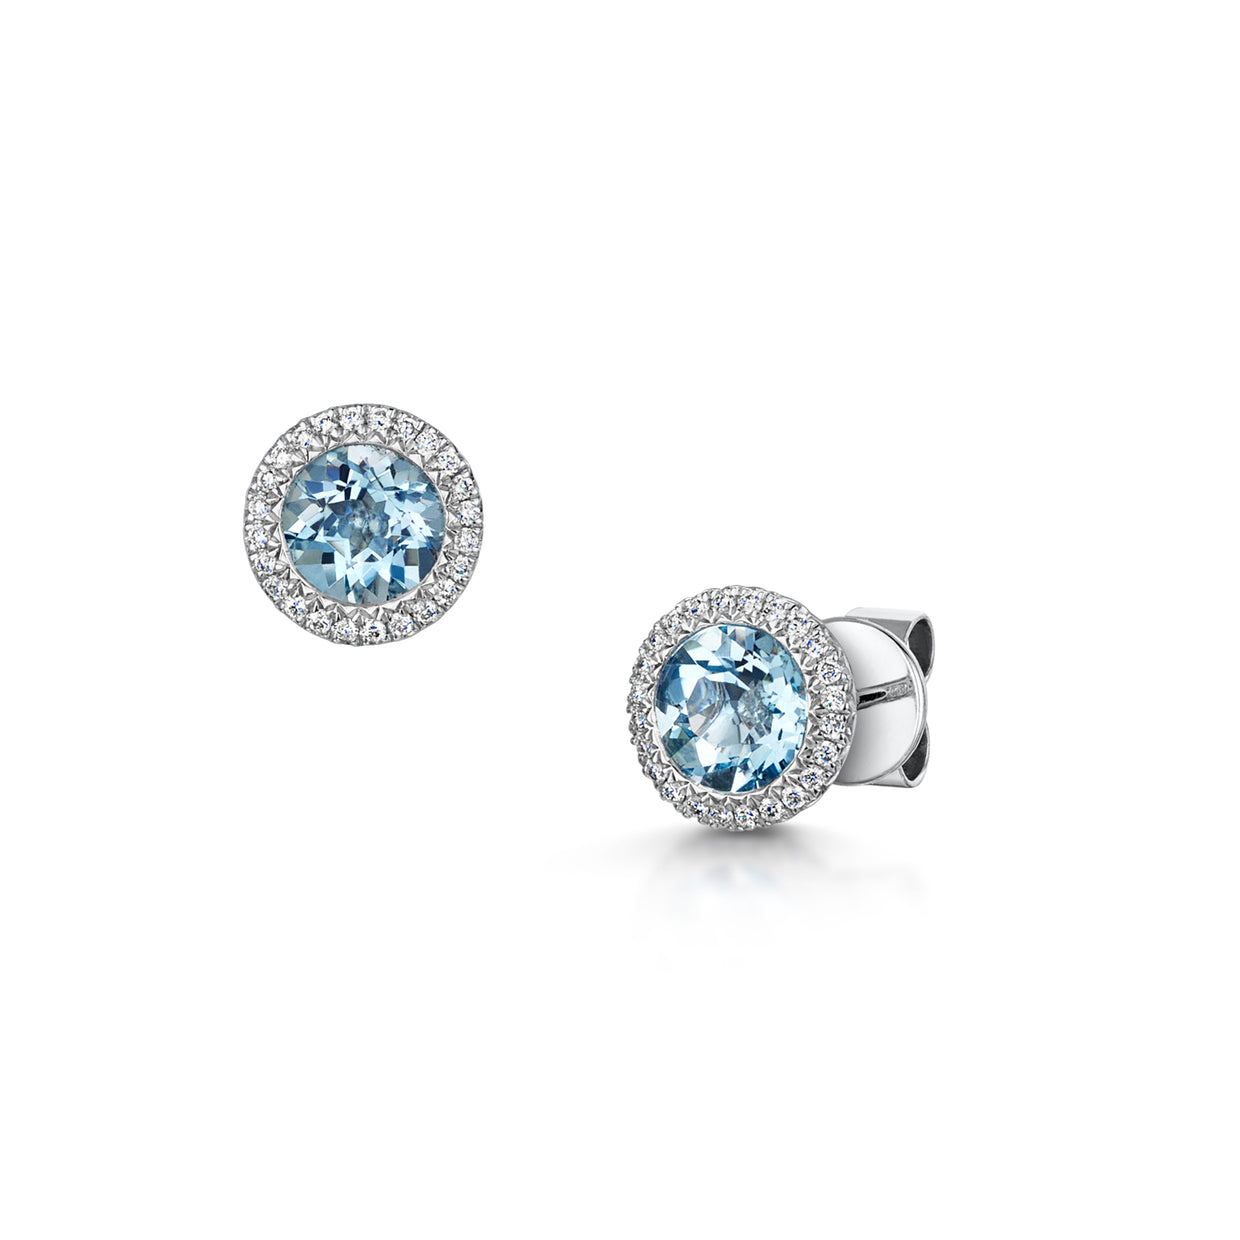 Aquamarine and diamond stud earrings in 18ct white gold-Hamilton & Inches